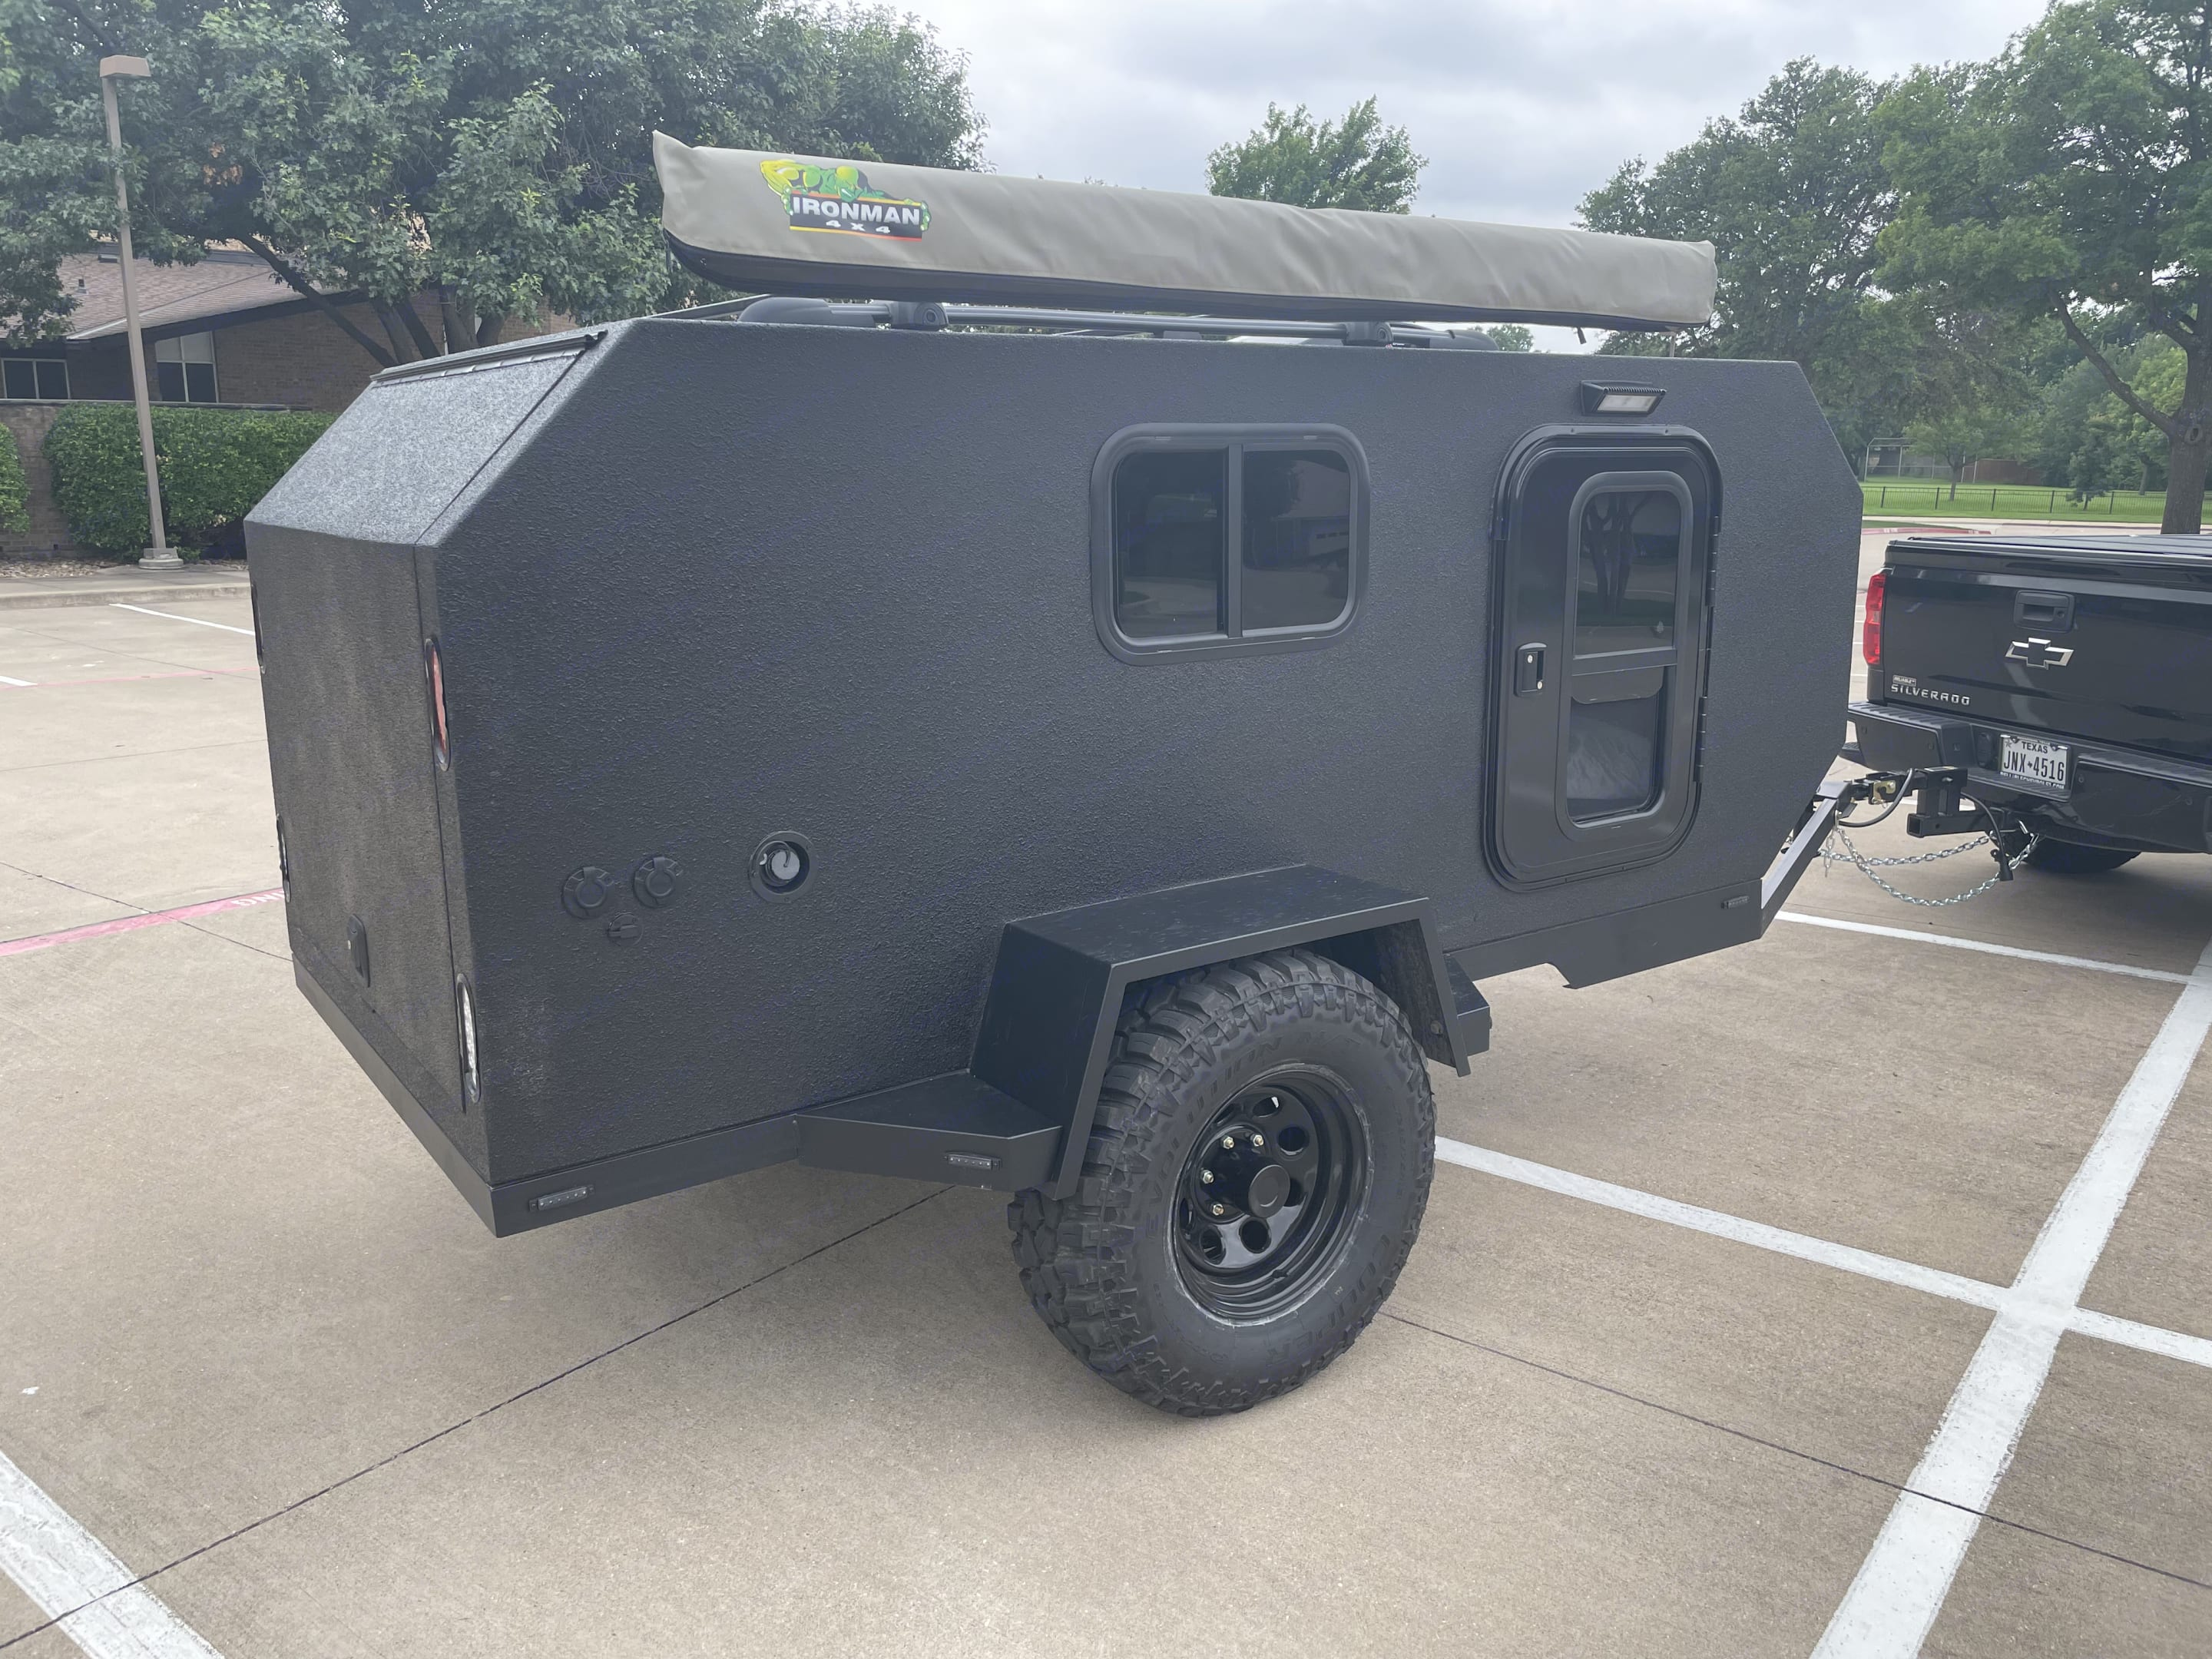 Includes small window, door and awning with LED light hookup. Trailmate Butte 2021